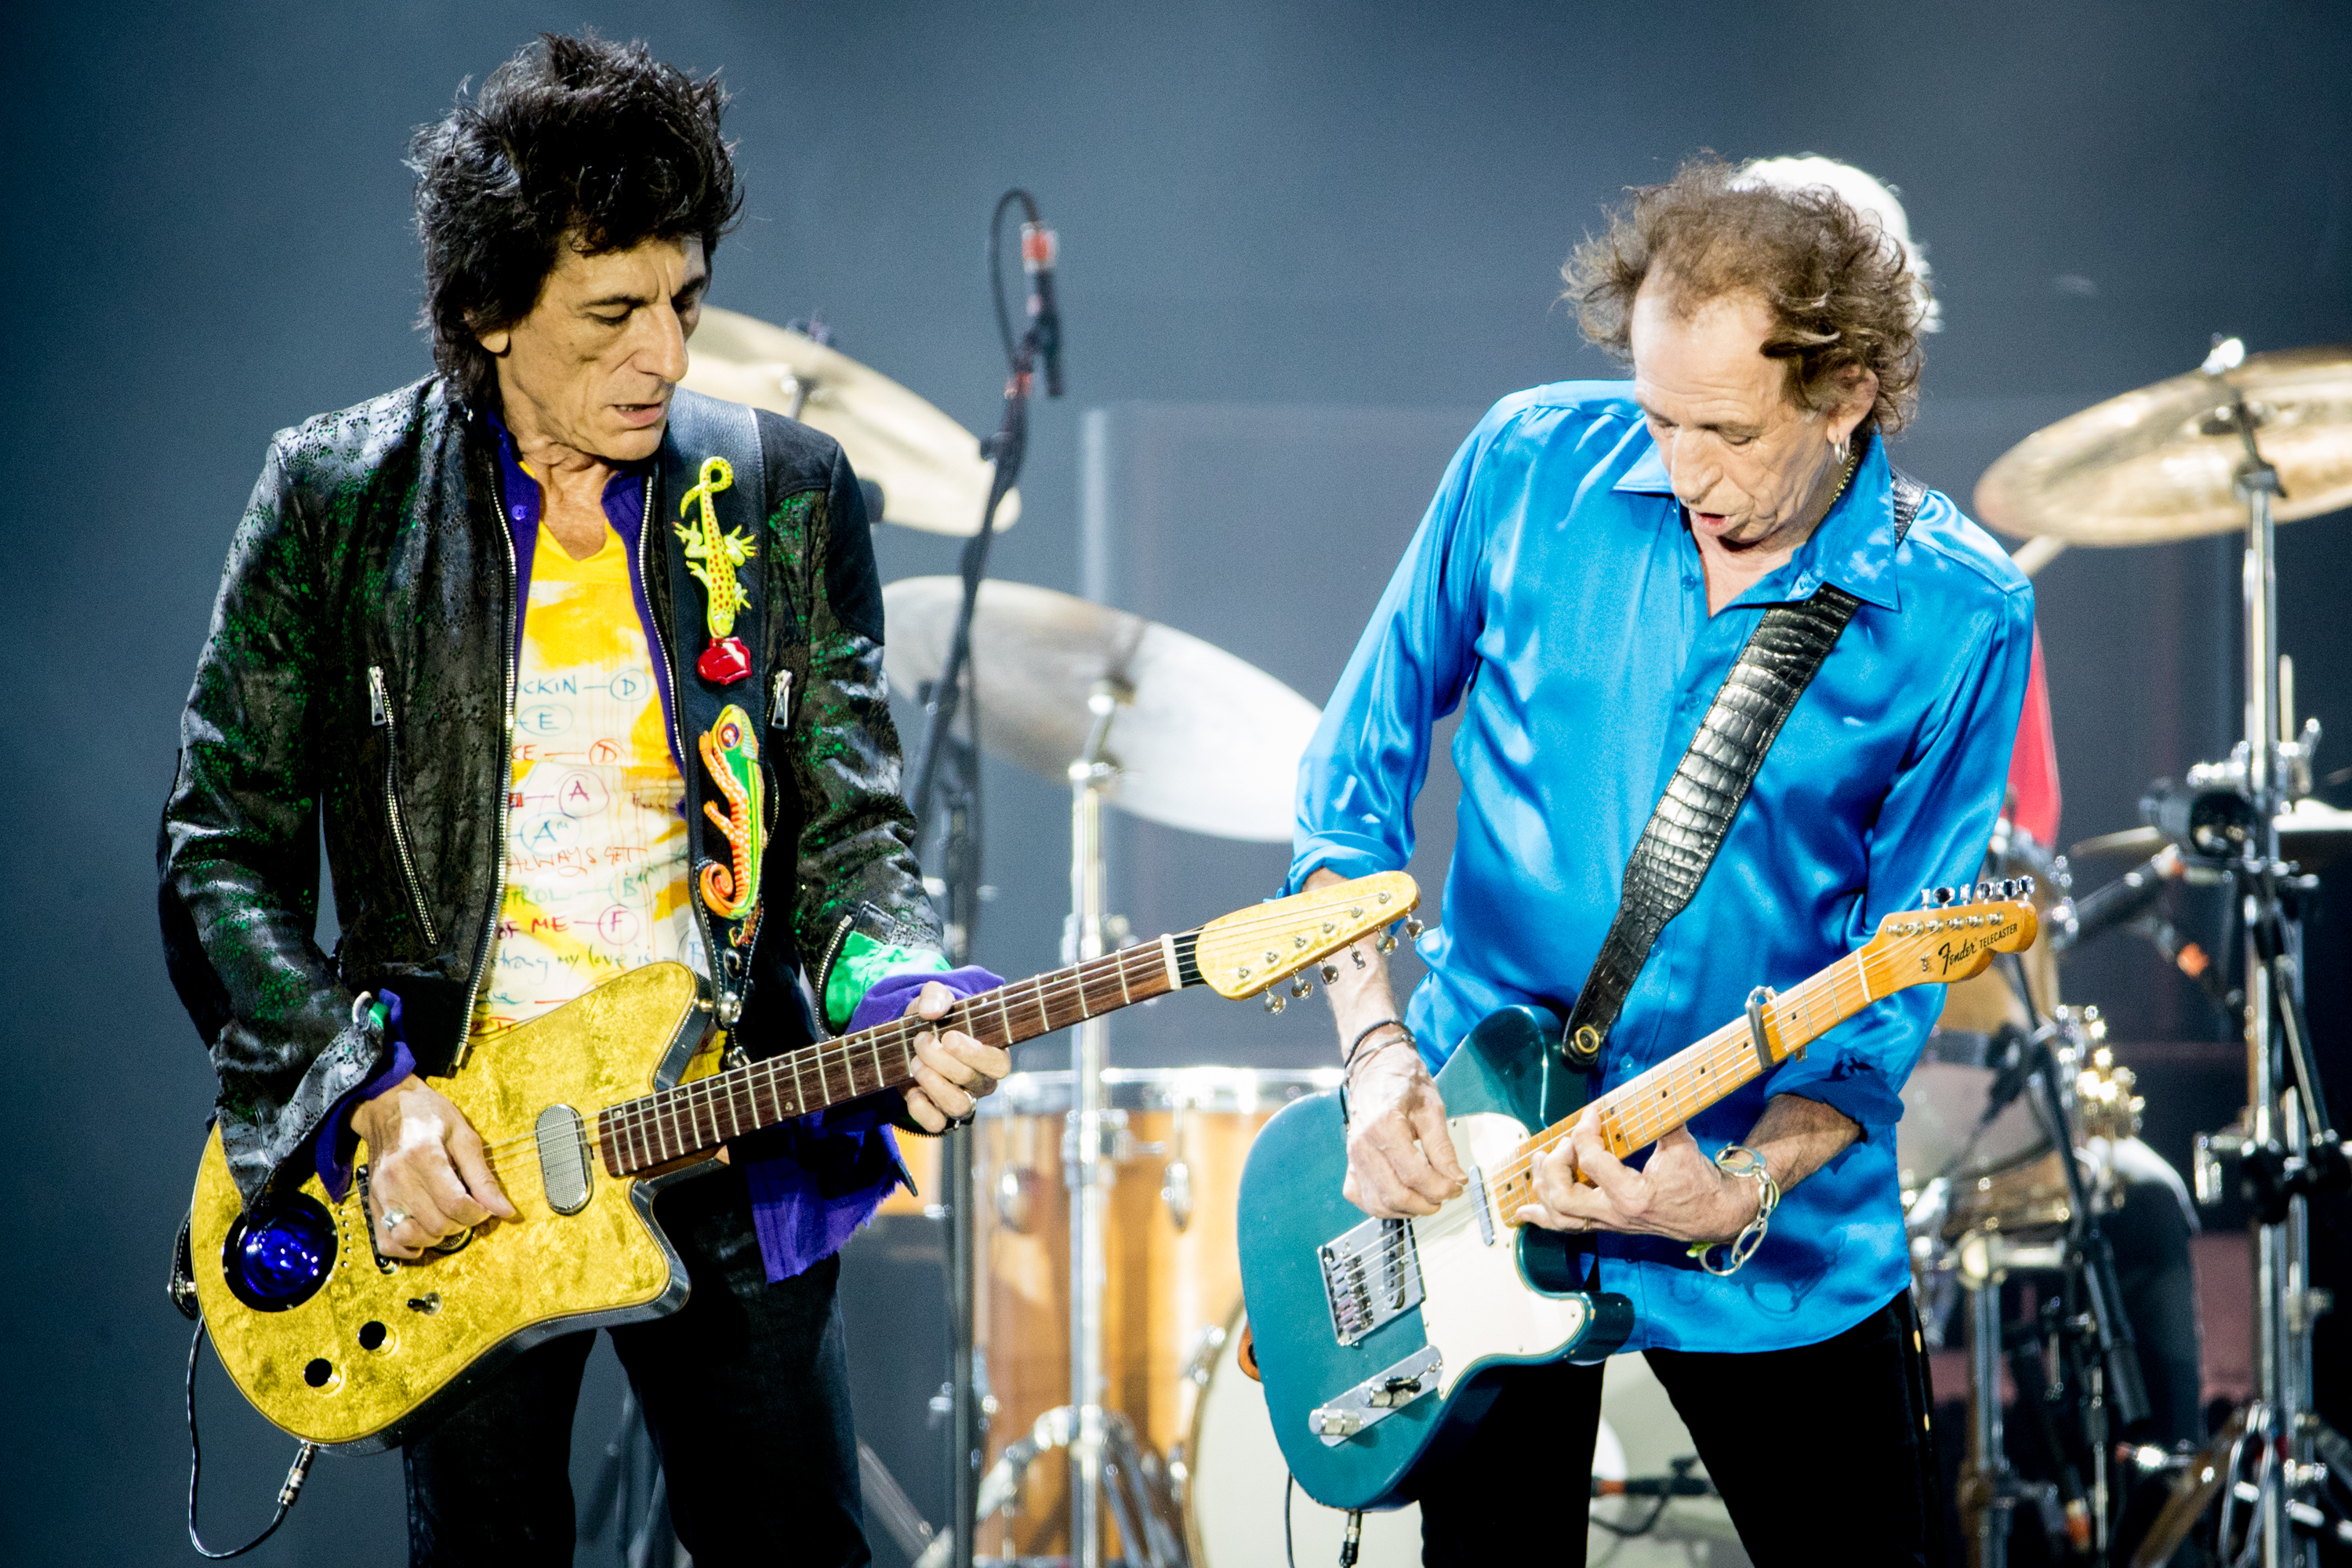 MIAMI, FLORIDA - AUGUST 30: Ronnie Wood and Keith Richards of The Rolling Stones perform onstage at Hard Rock Stadium on August 30, 2019 in Miami, Florida. (Photo by Rich Fury/Getty Images)